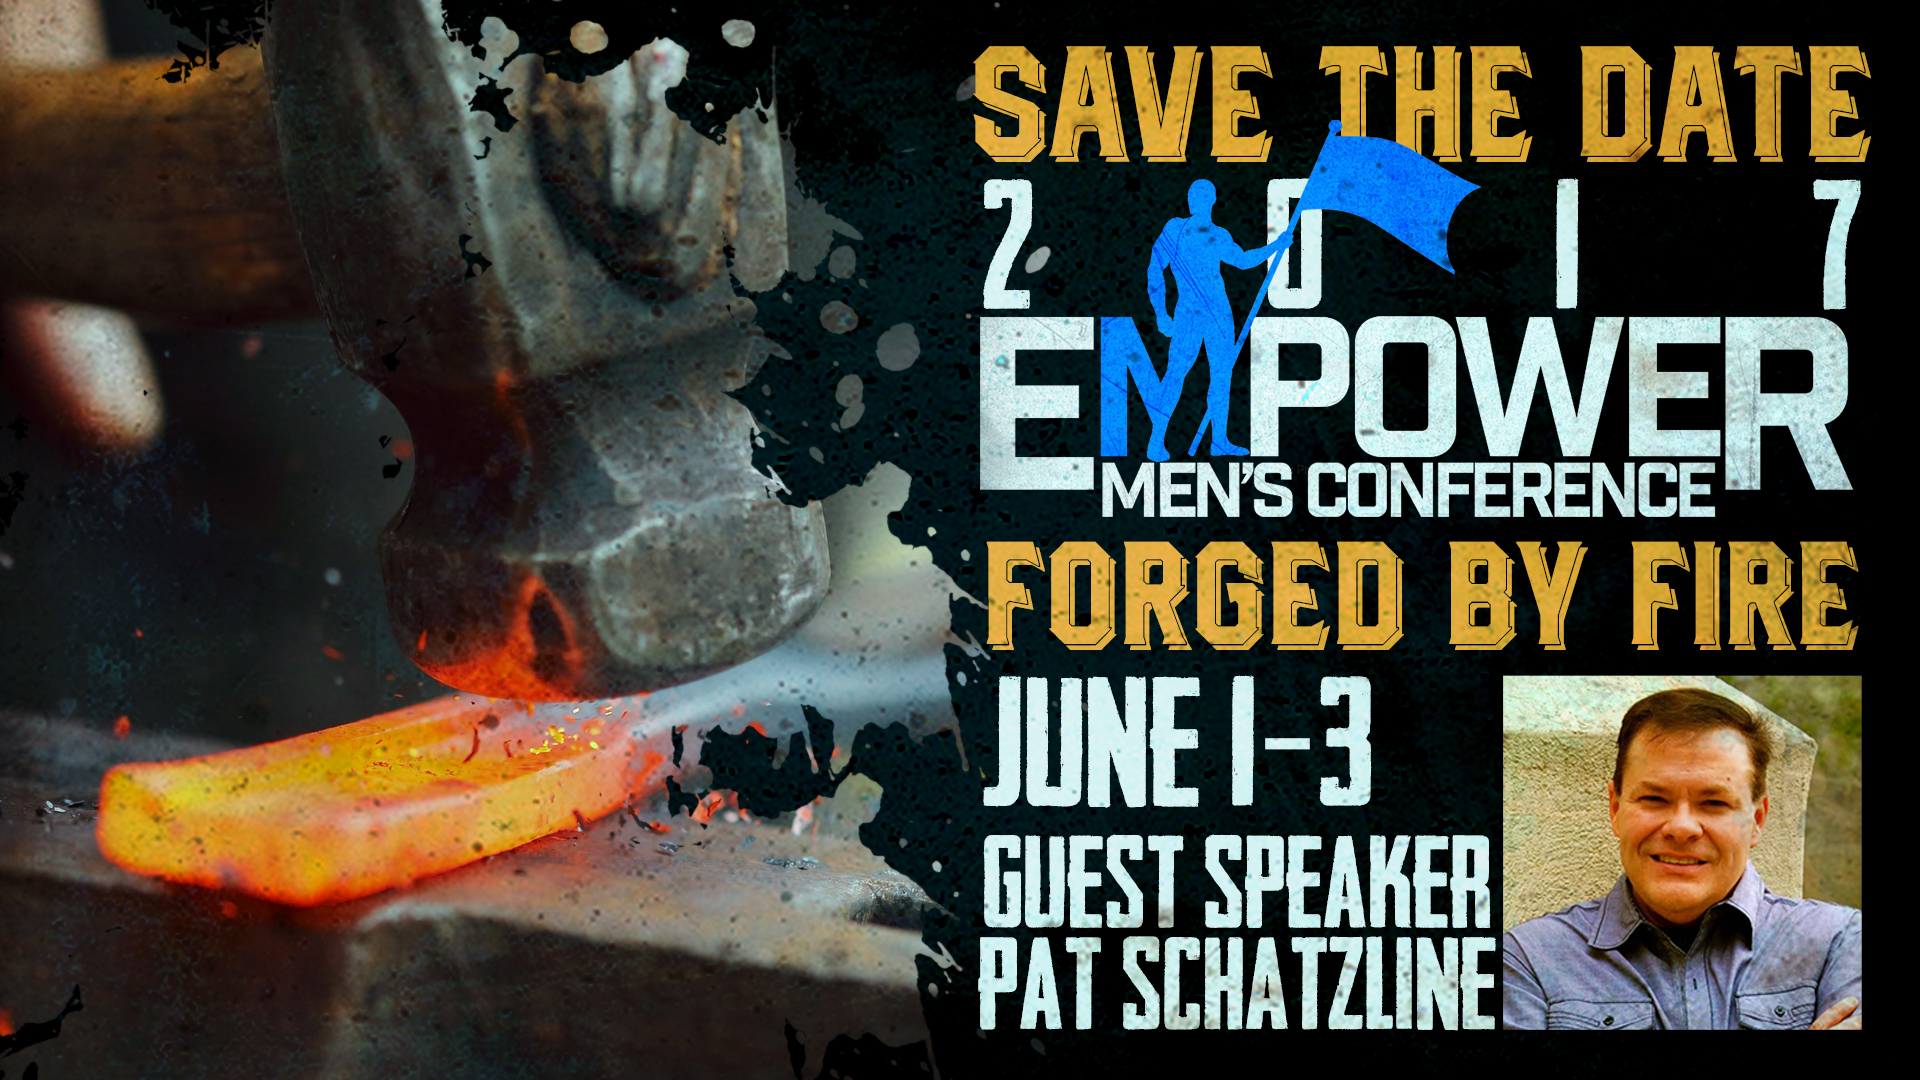 mens-conference-2017-save-the-date